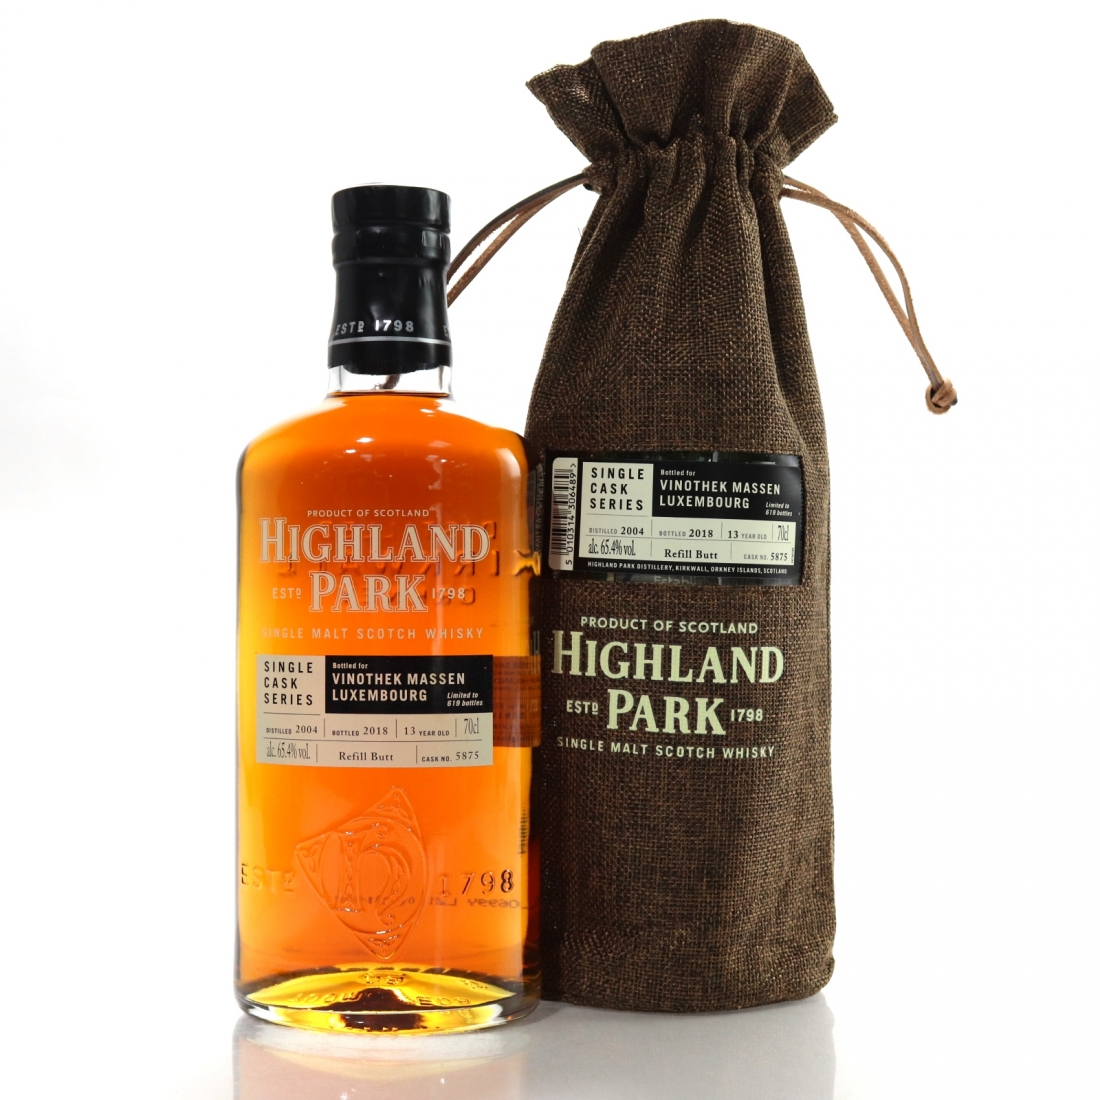 Highland Park 2004 Single Cask 13 Year Old #5875 / Vinothek Massen Luxembourg